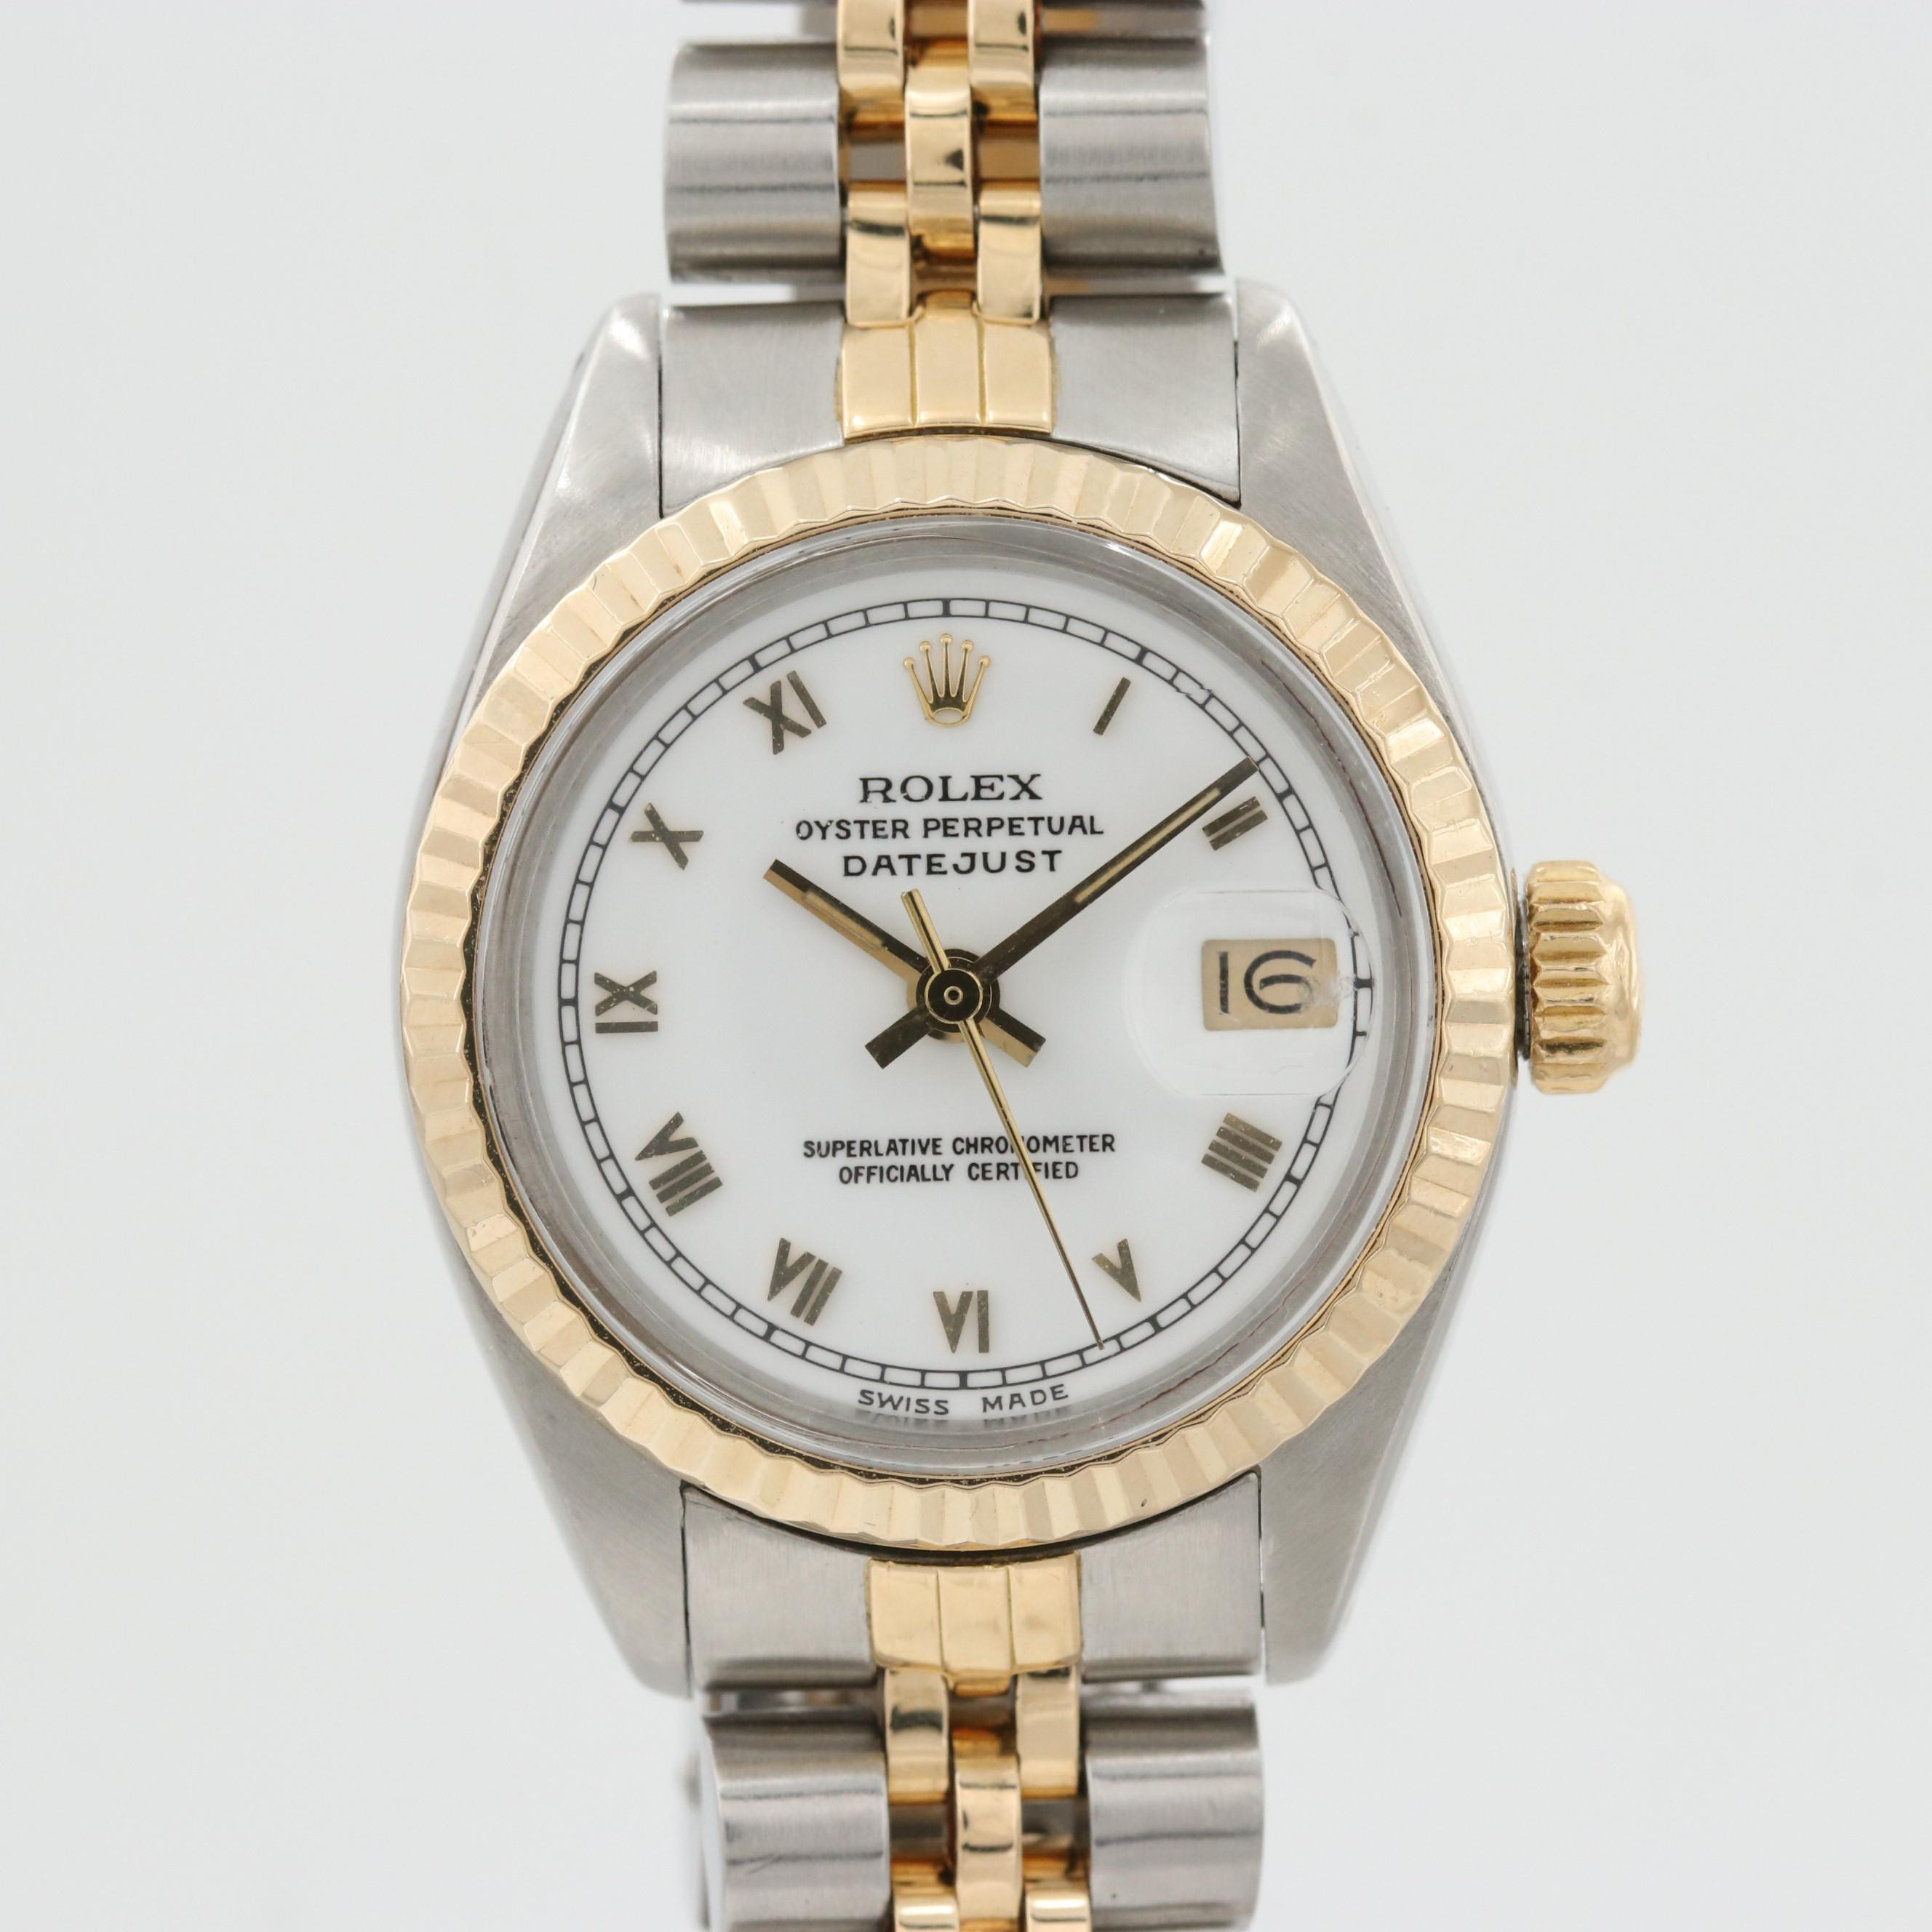 Vintage Rolex Datejust Stainless Steel and 14K Yellow Gold Wristwatch, 1982